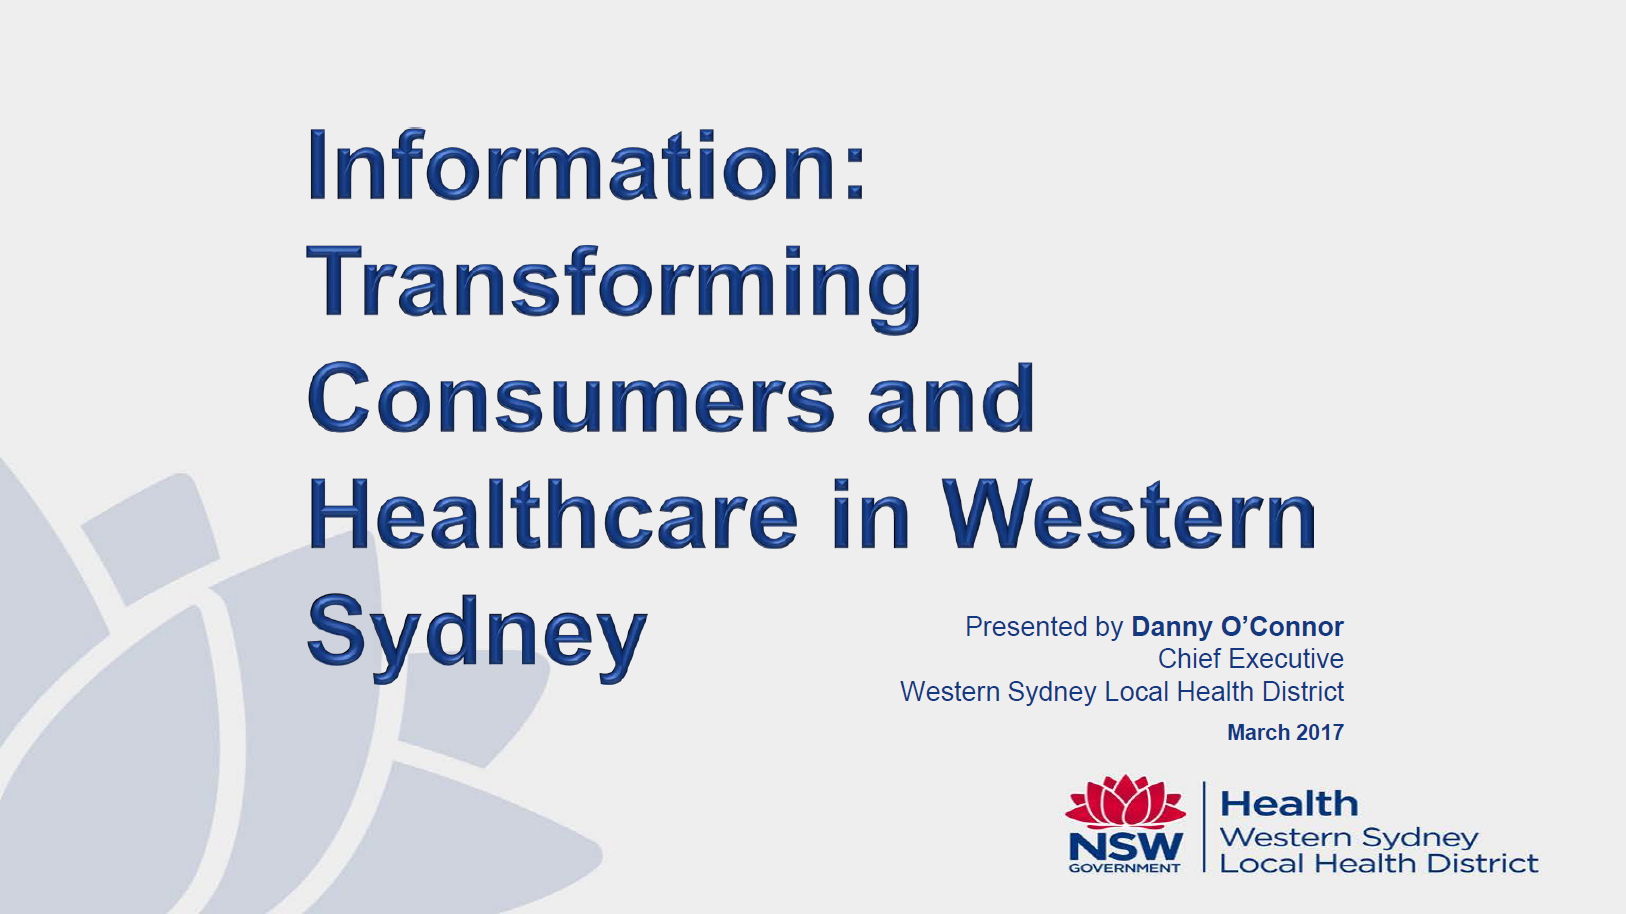 Information: Transforming Consumers and Healthcare in Western Sydney